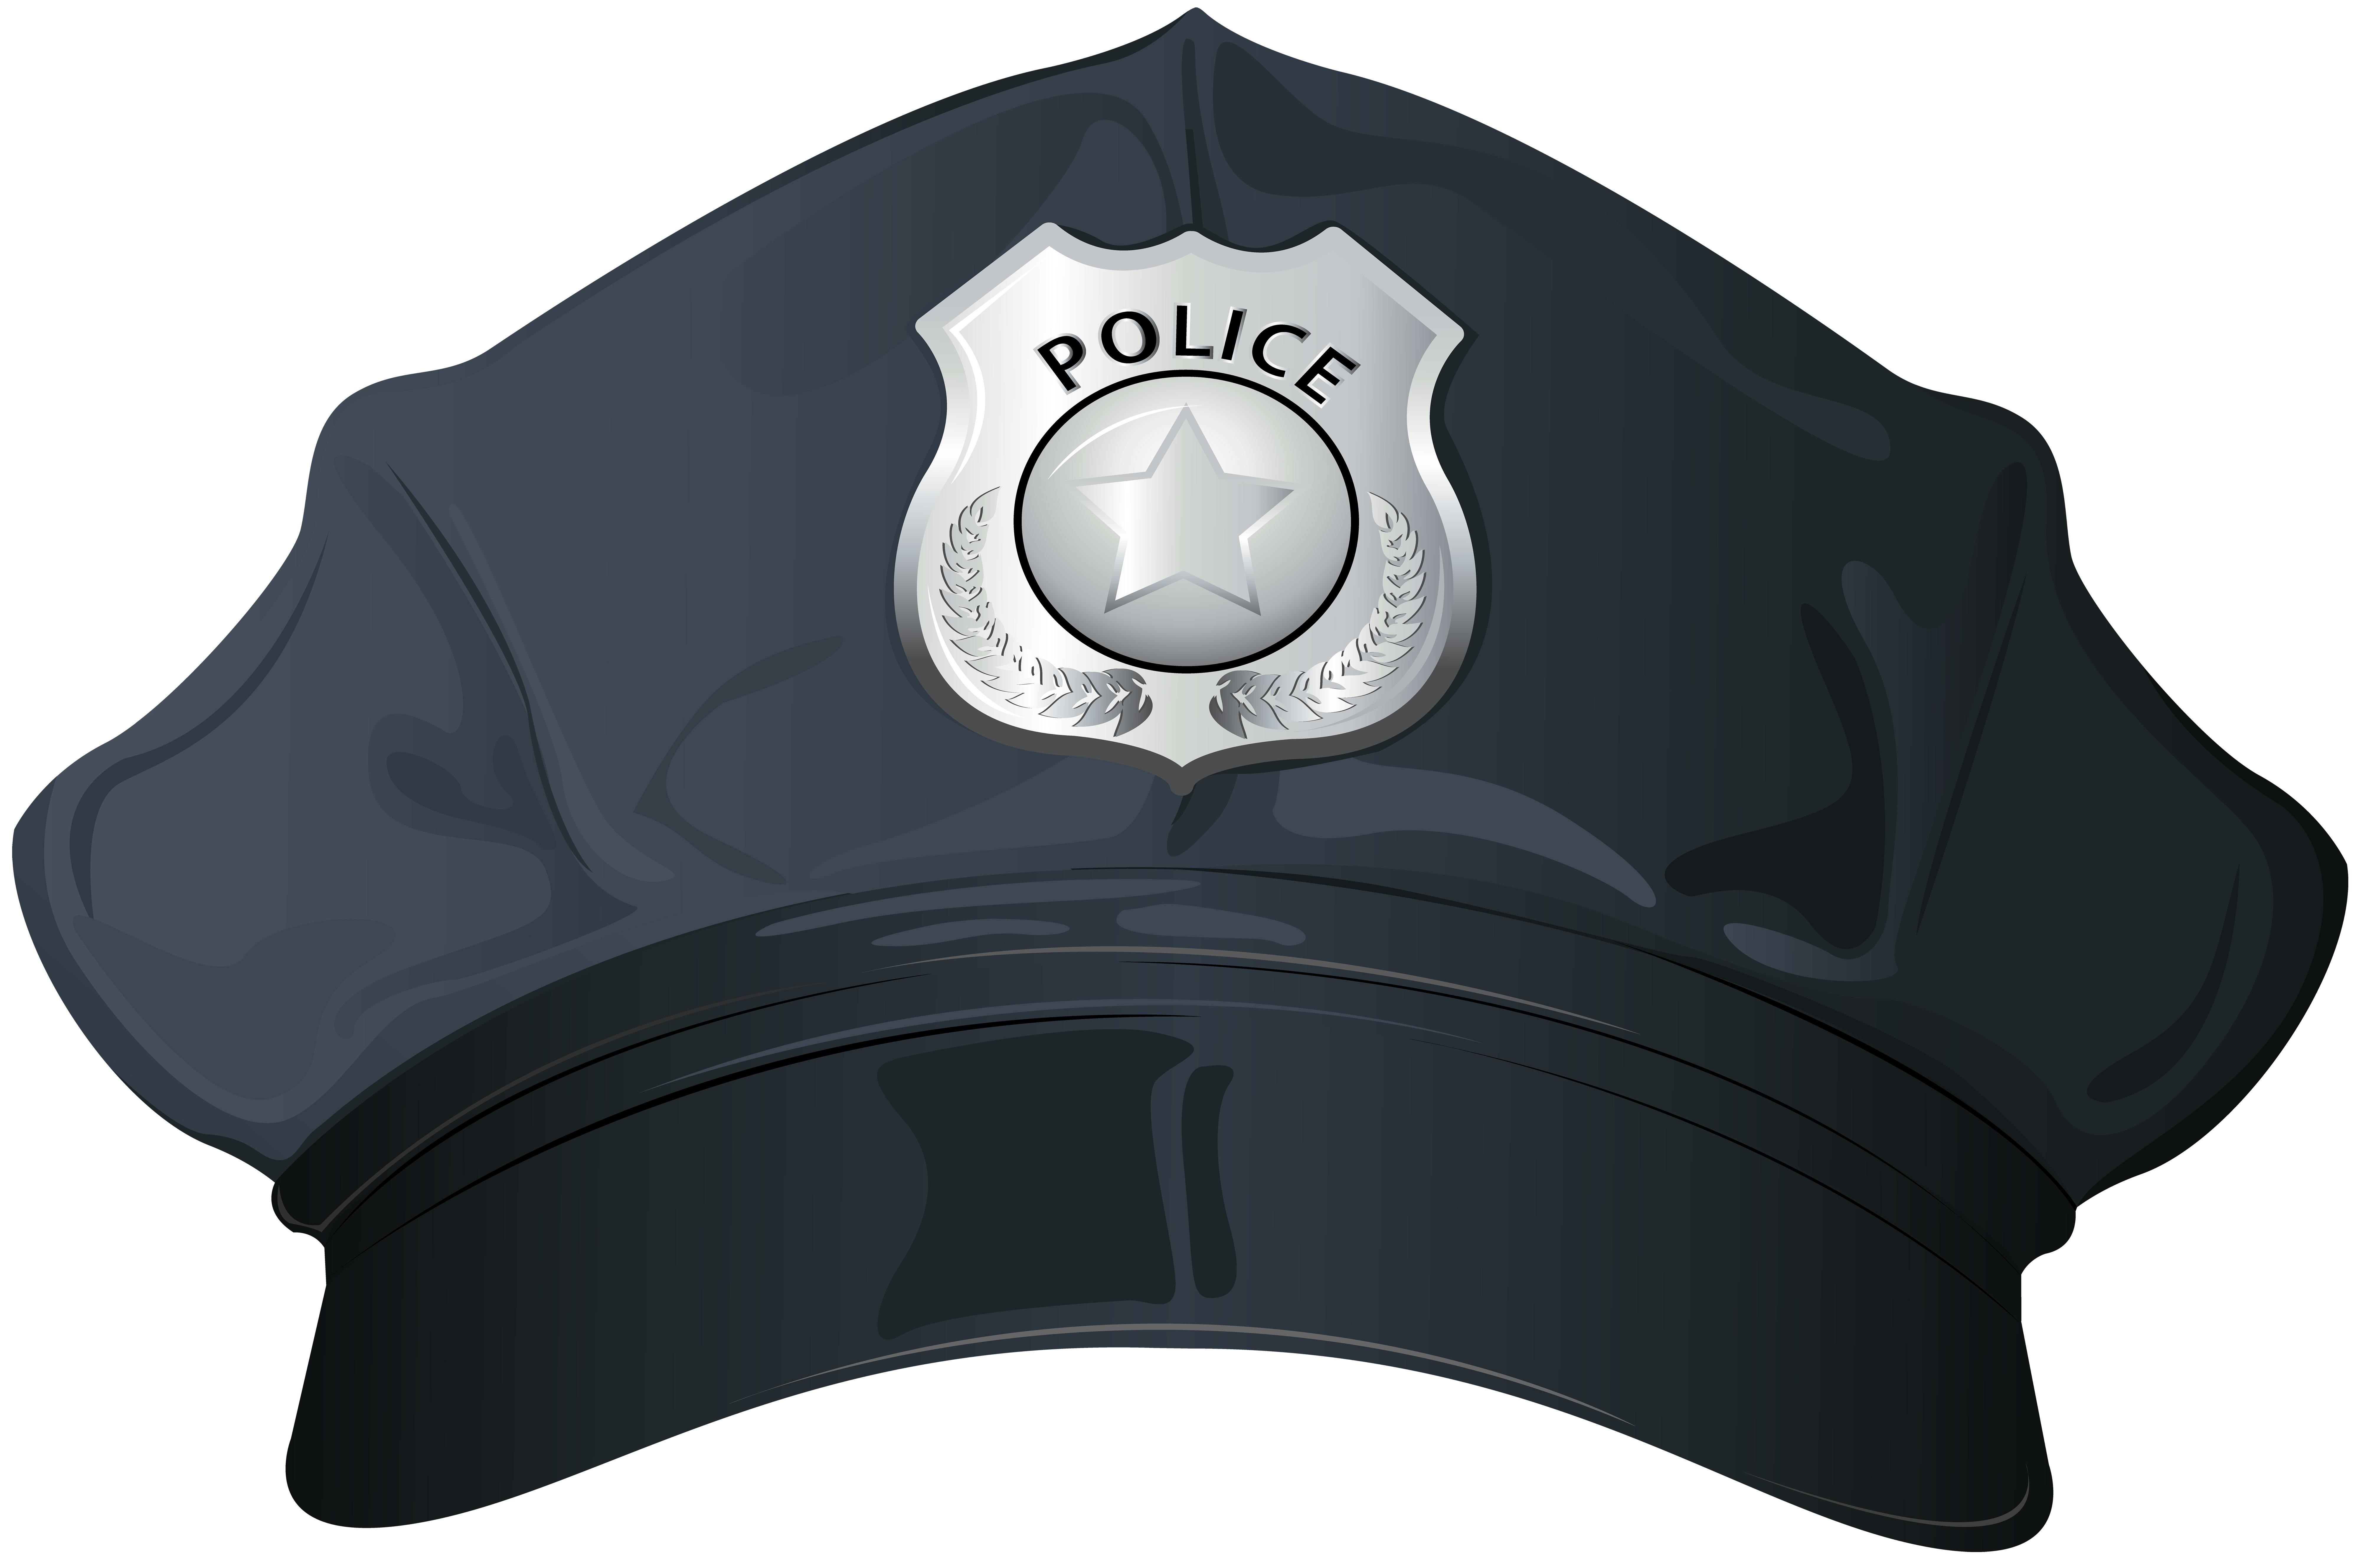 hats clipart police